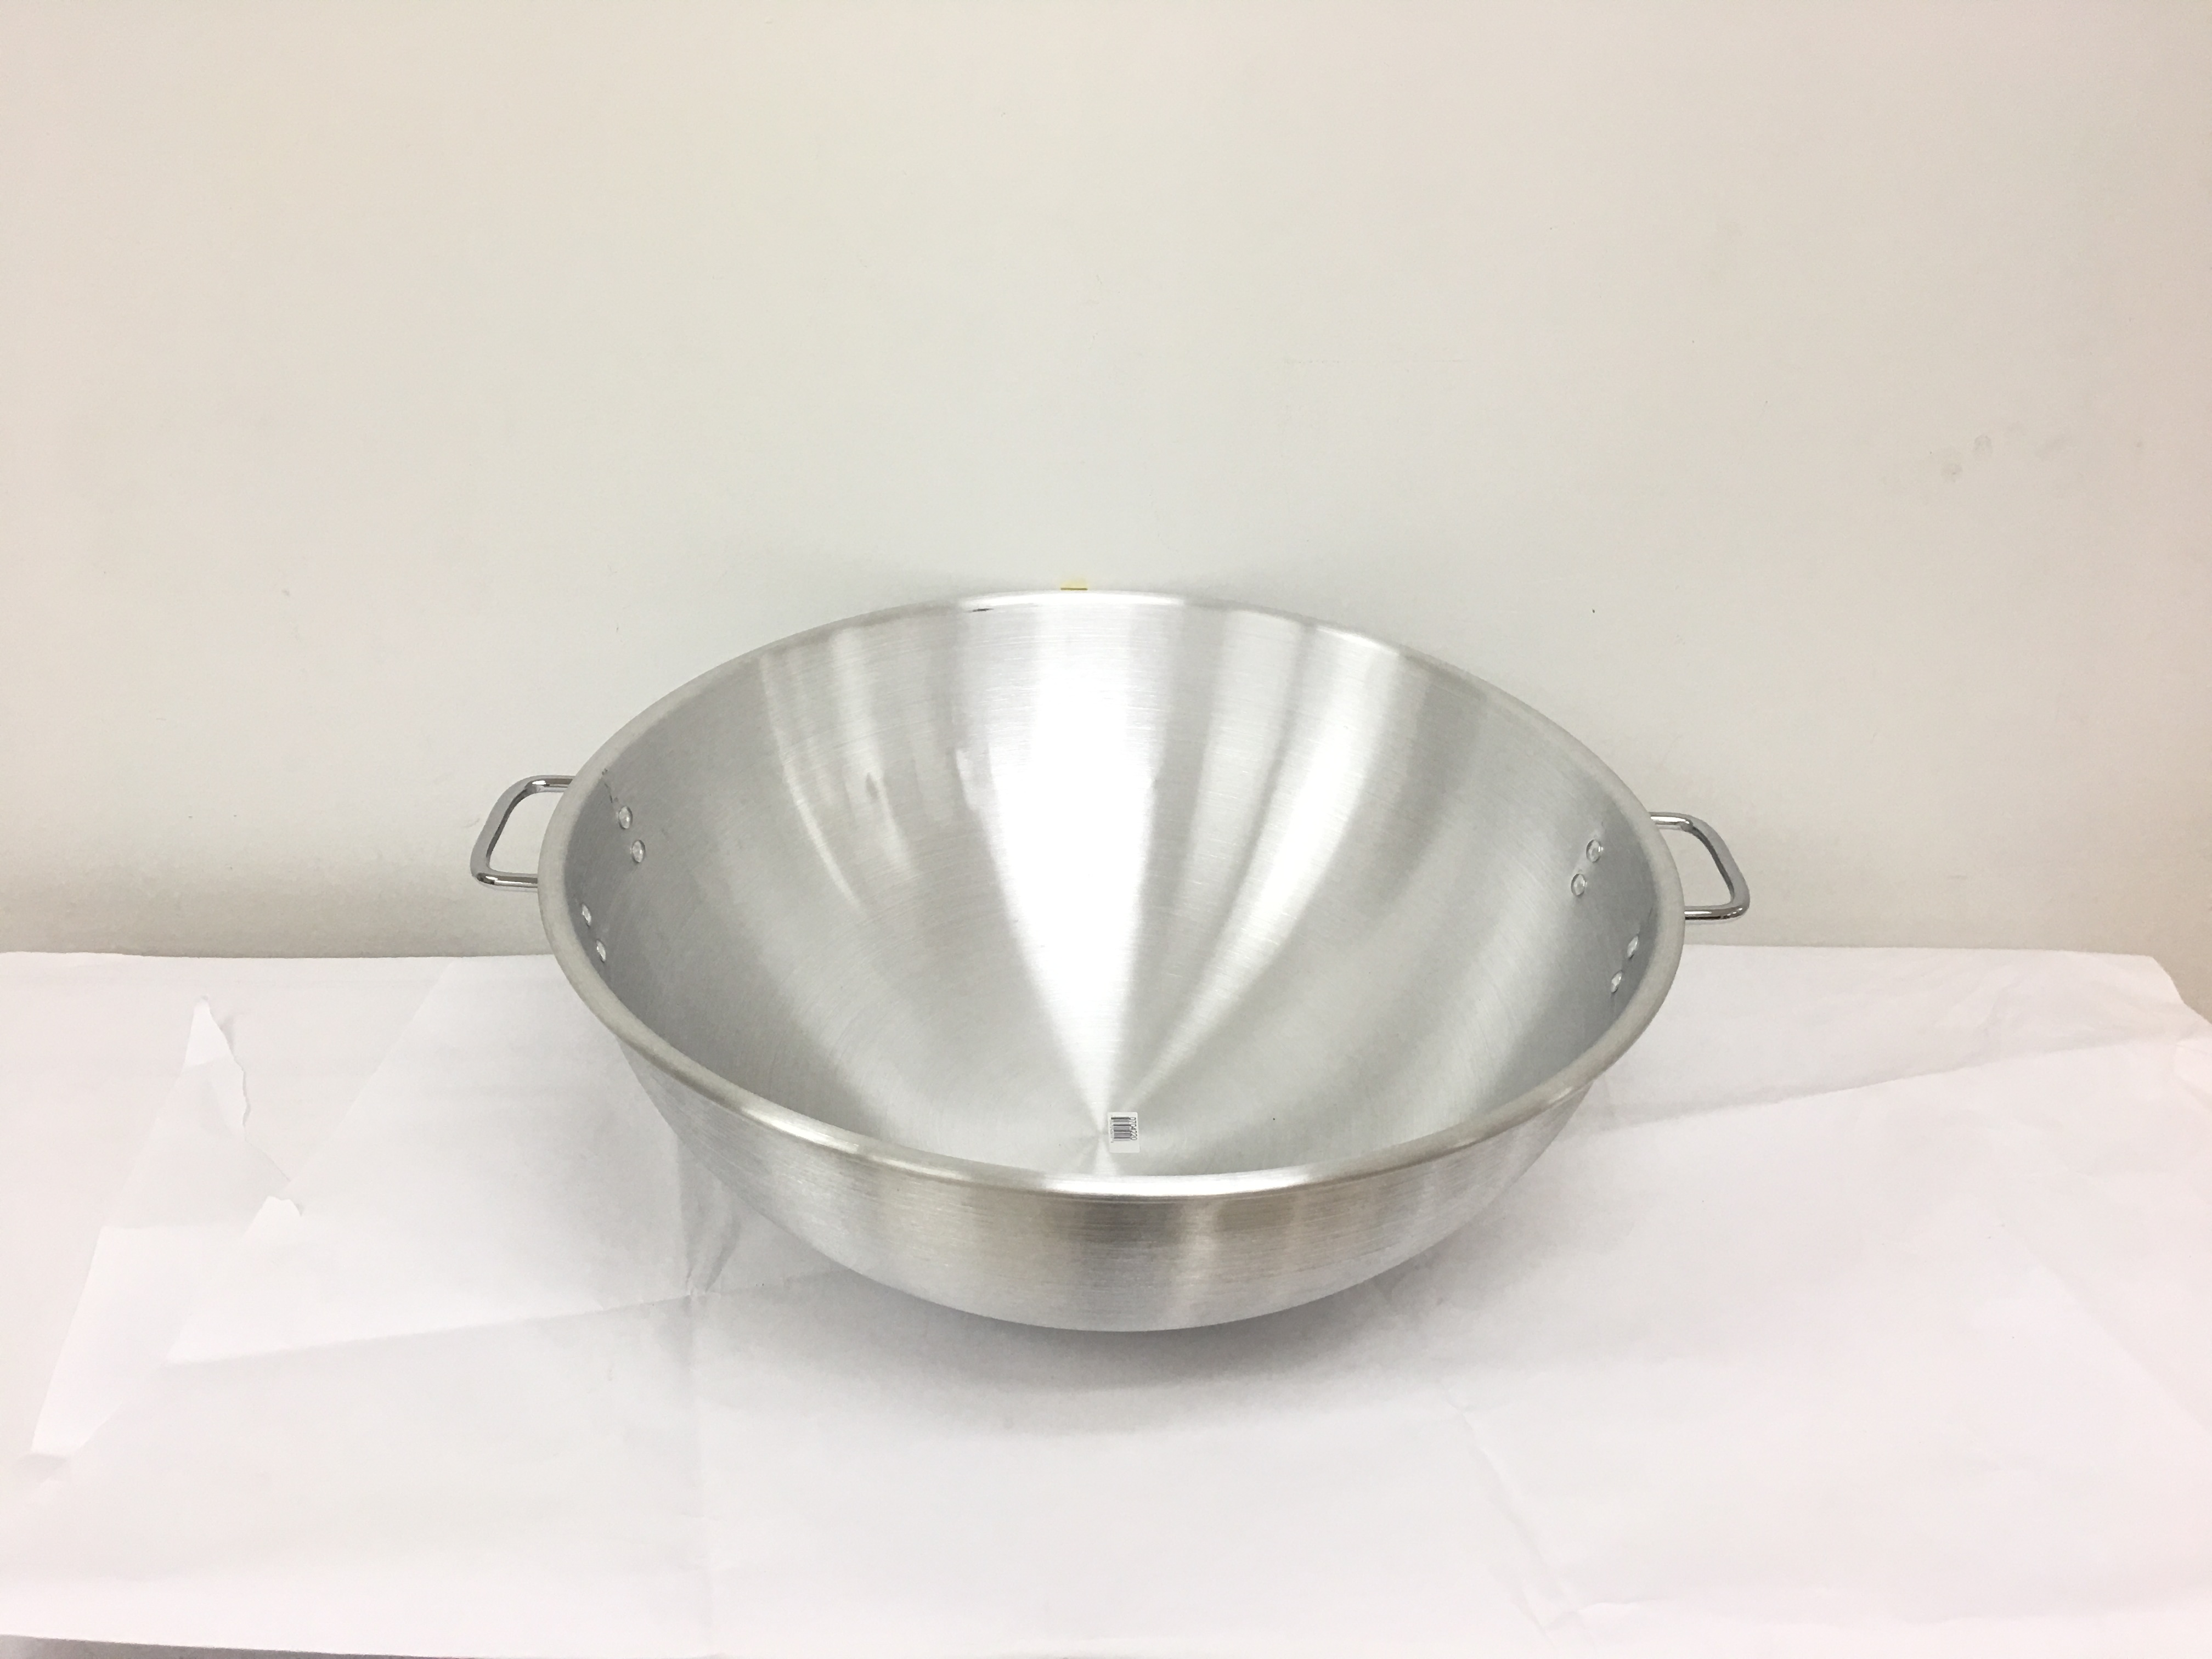 Asian Cooking Serving Ware C Amp R Equipment Service Inc